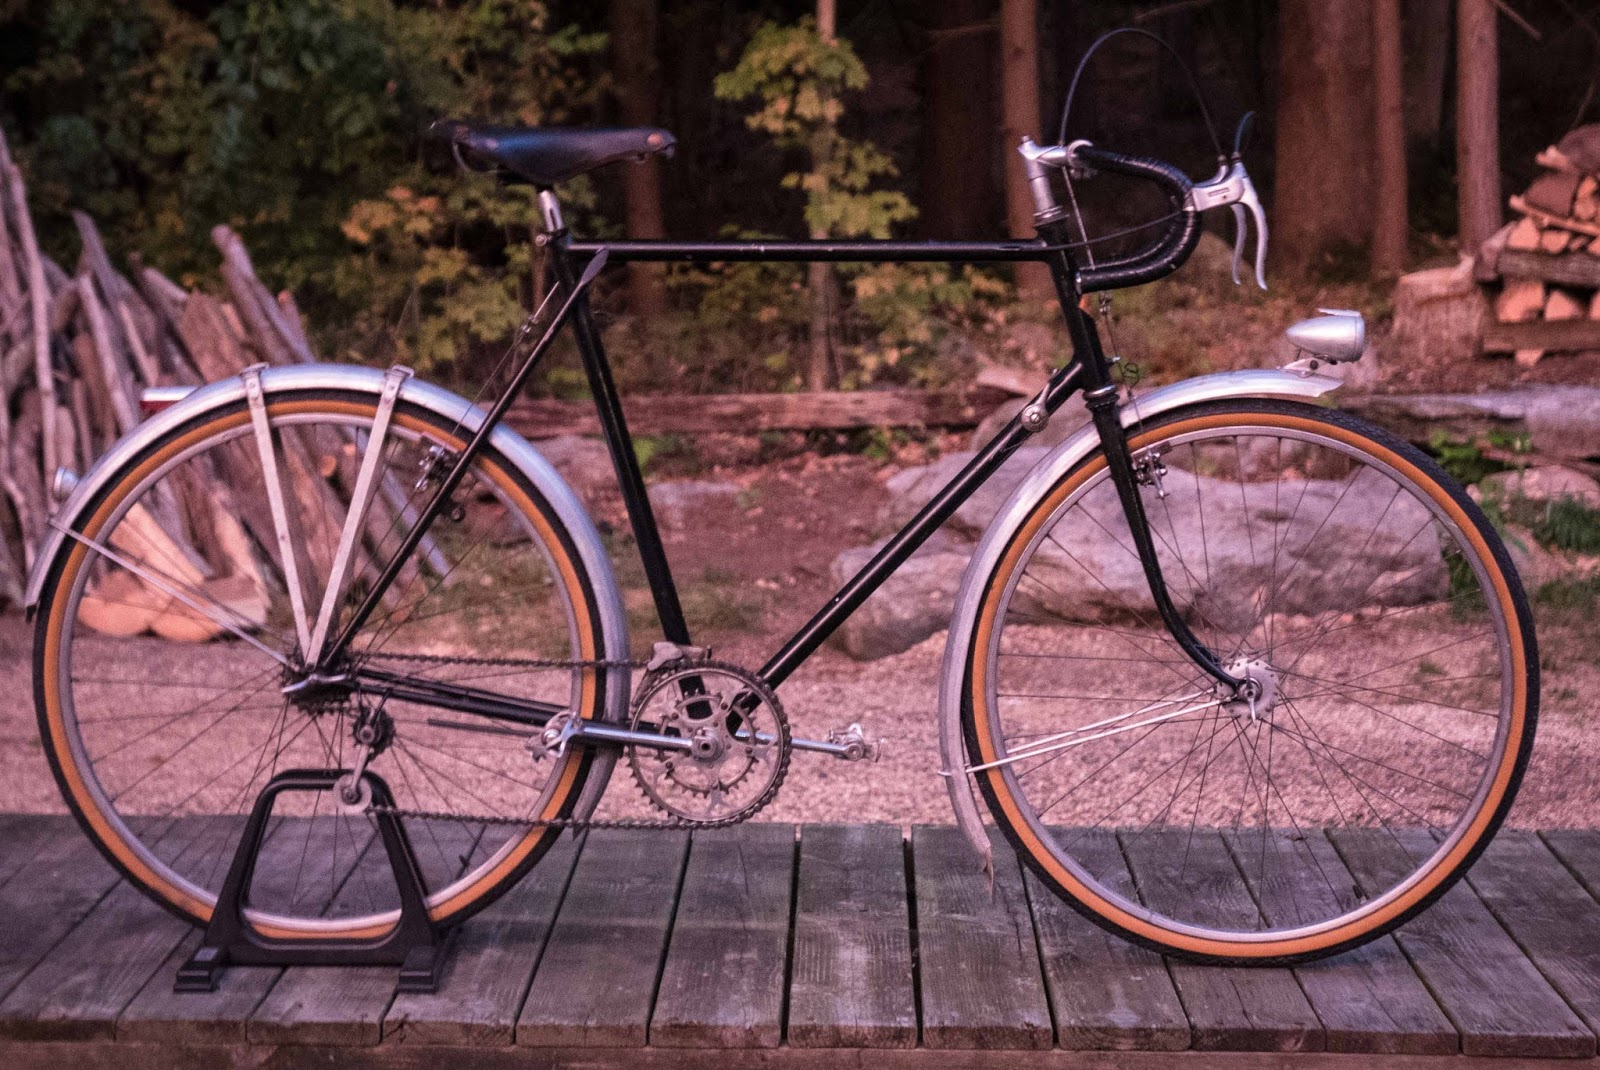 velo orange piolet weight loss